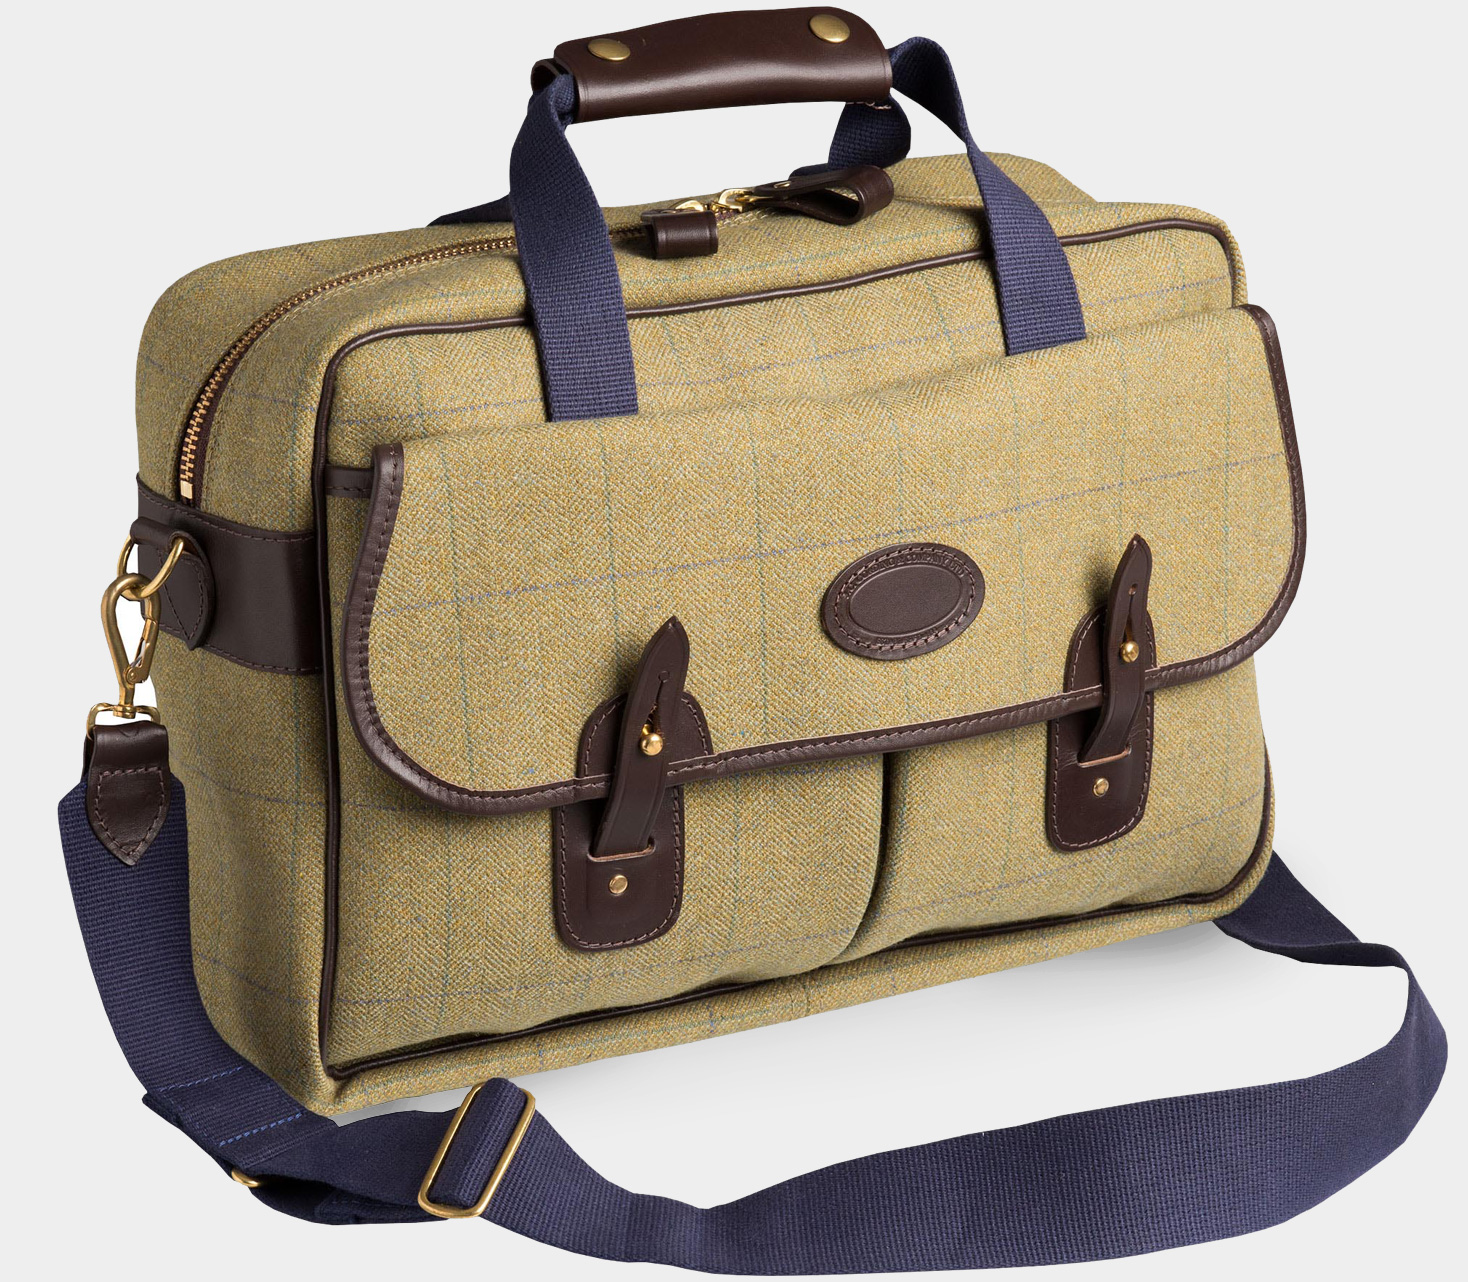 Men's Bags & Luggage